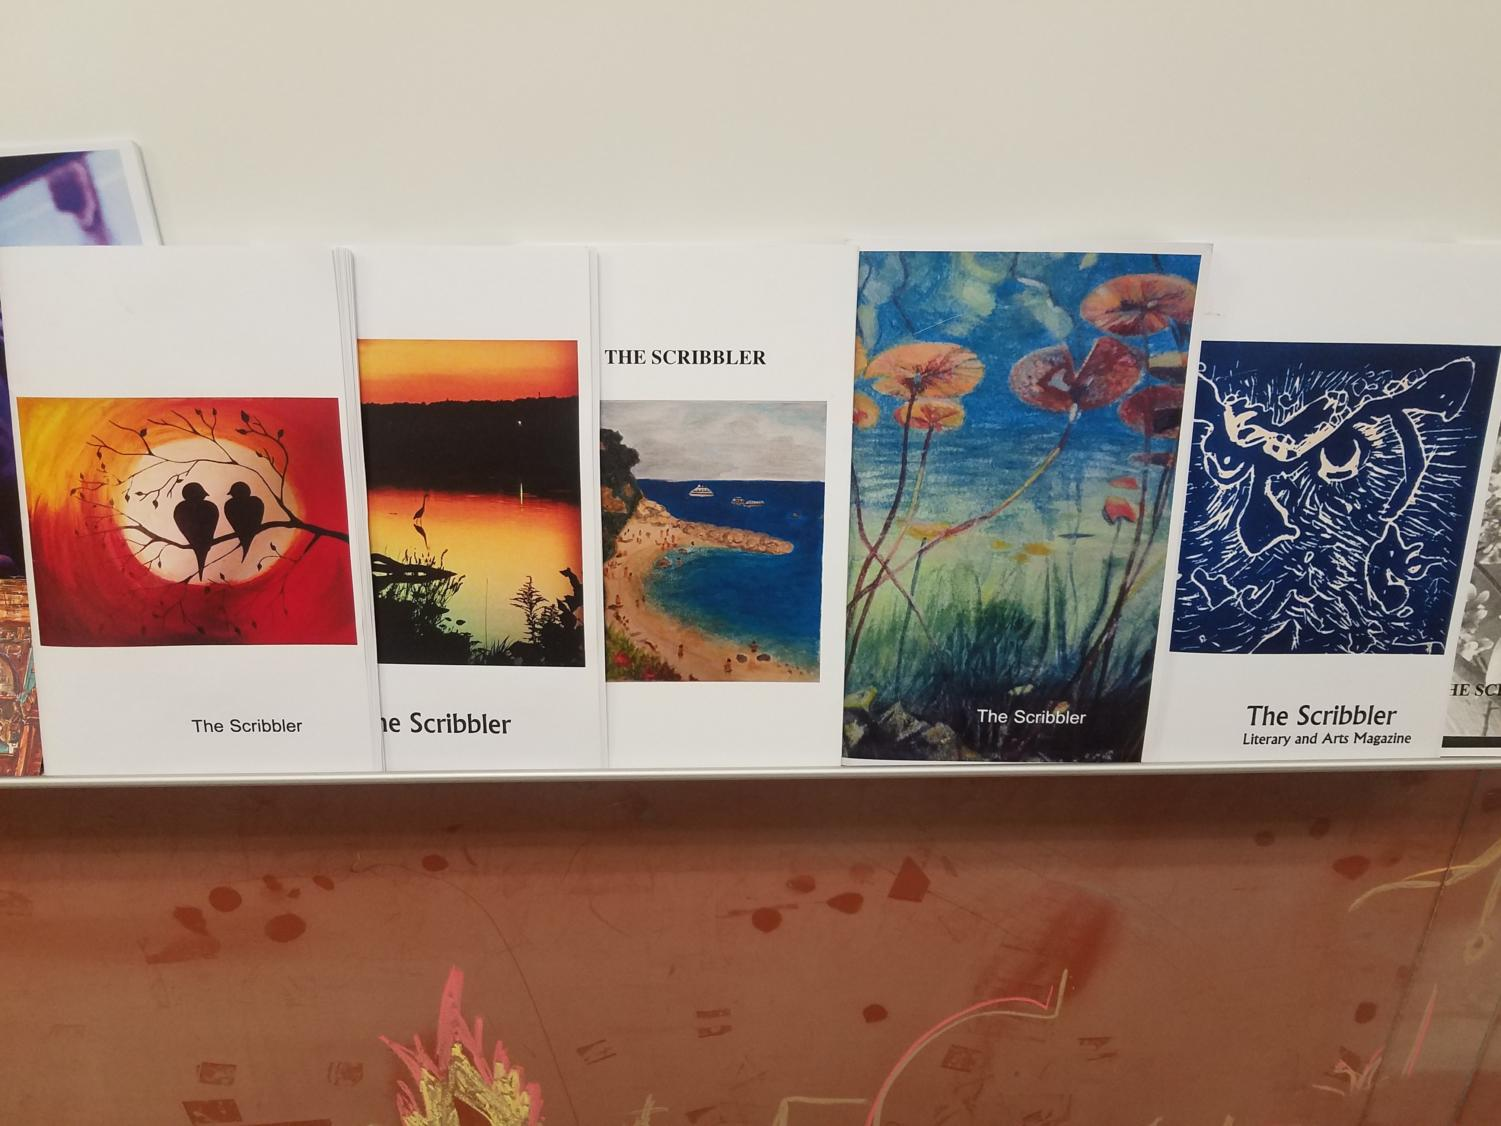 The Scribbler has been publishing for years and the photos on the front displays the artwork or the picture of the previous winners of the year.